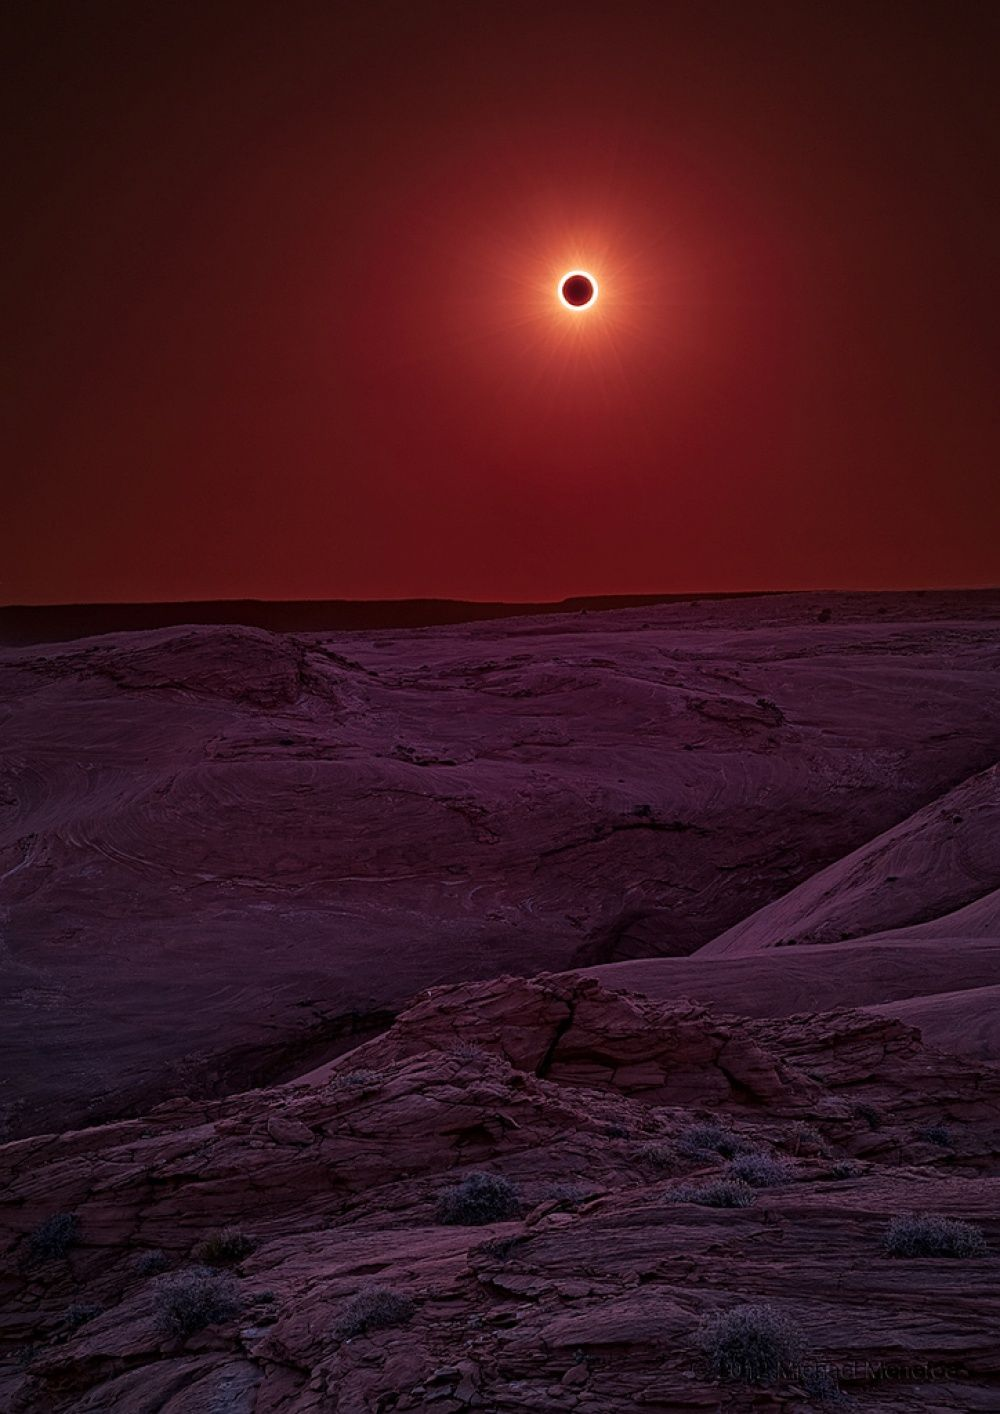 eclips?